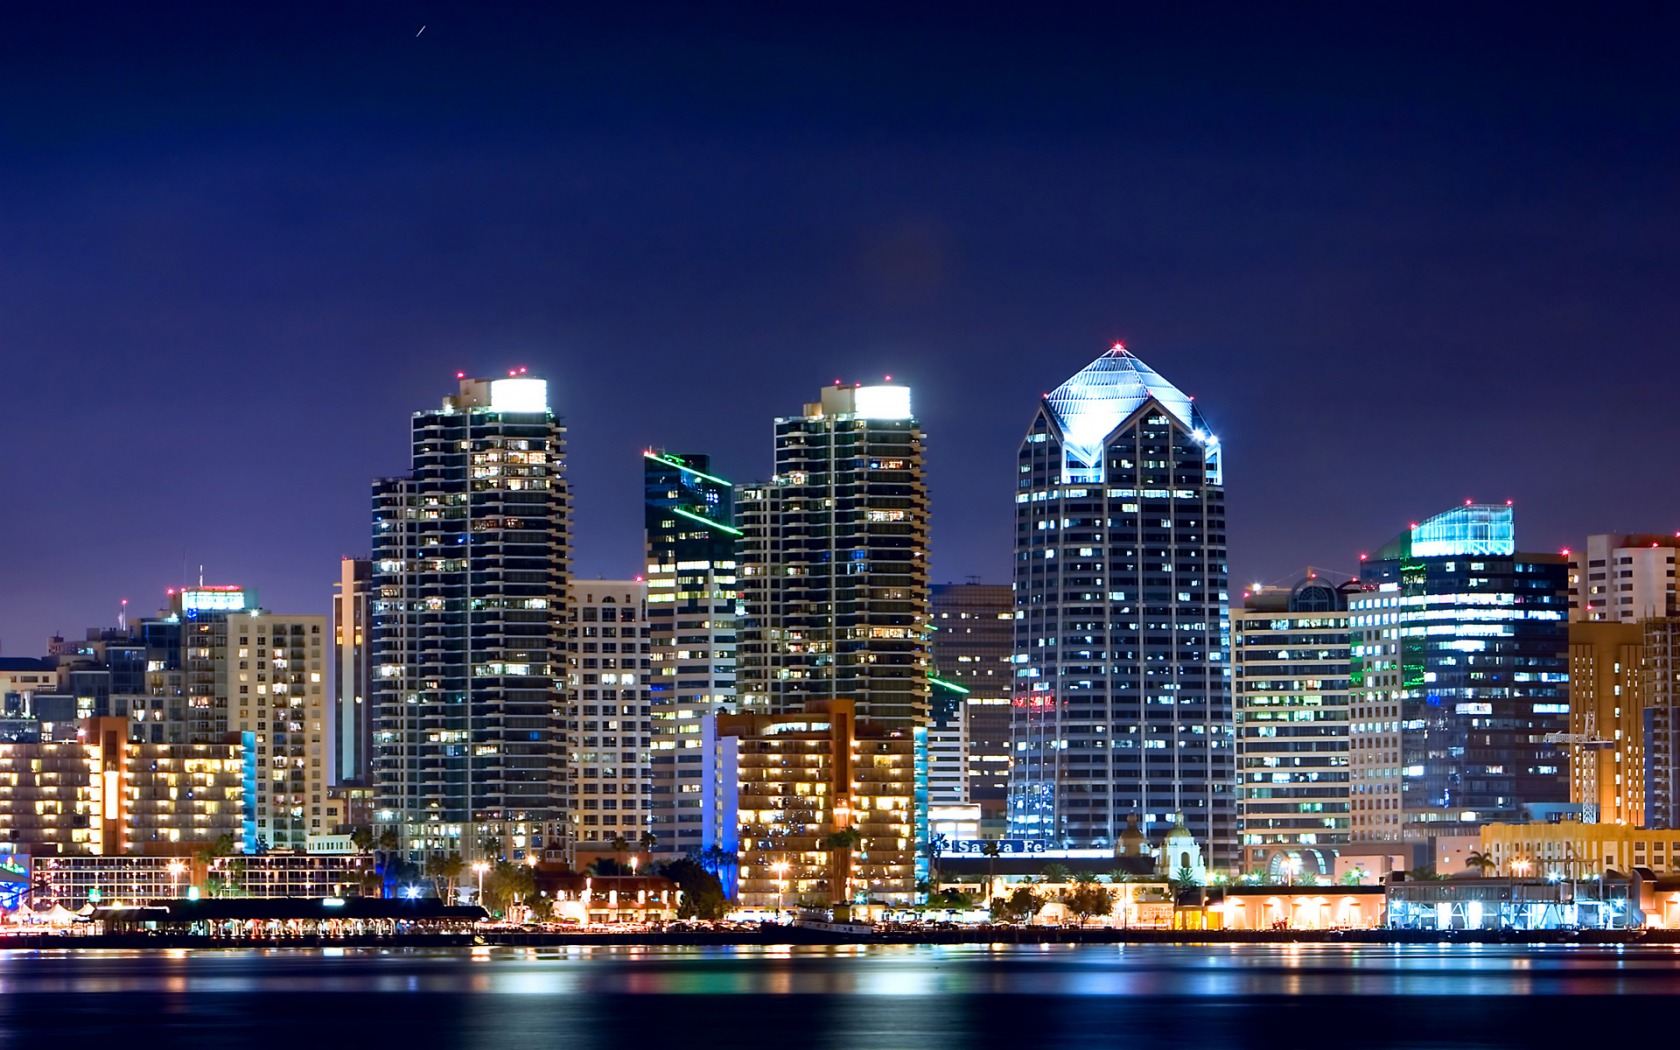 Download San Diego Wallpaper 24125 1680x1050 Px High Definition Wallpaper